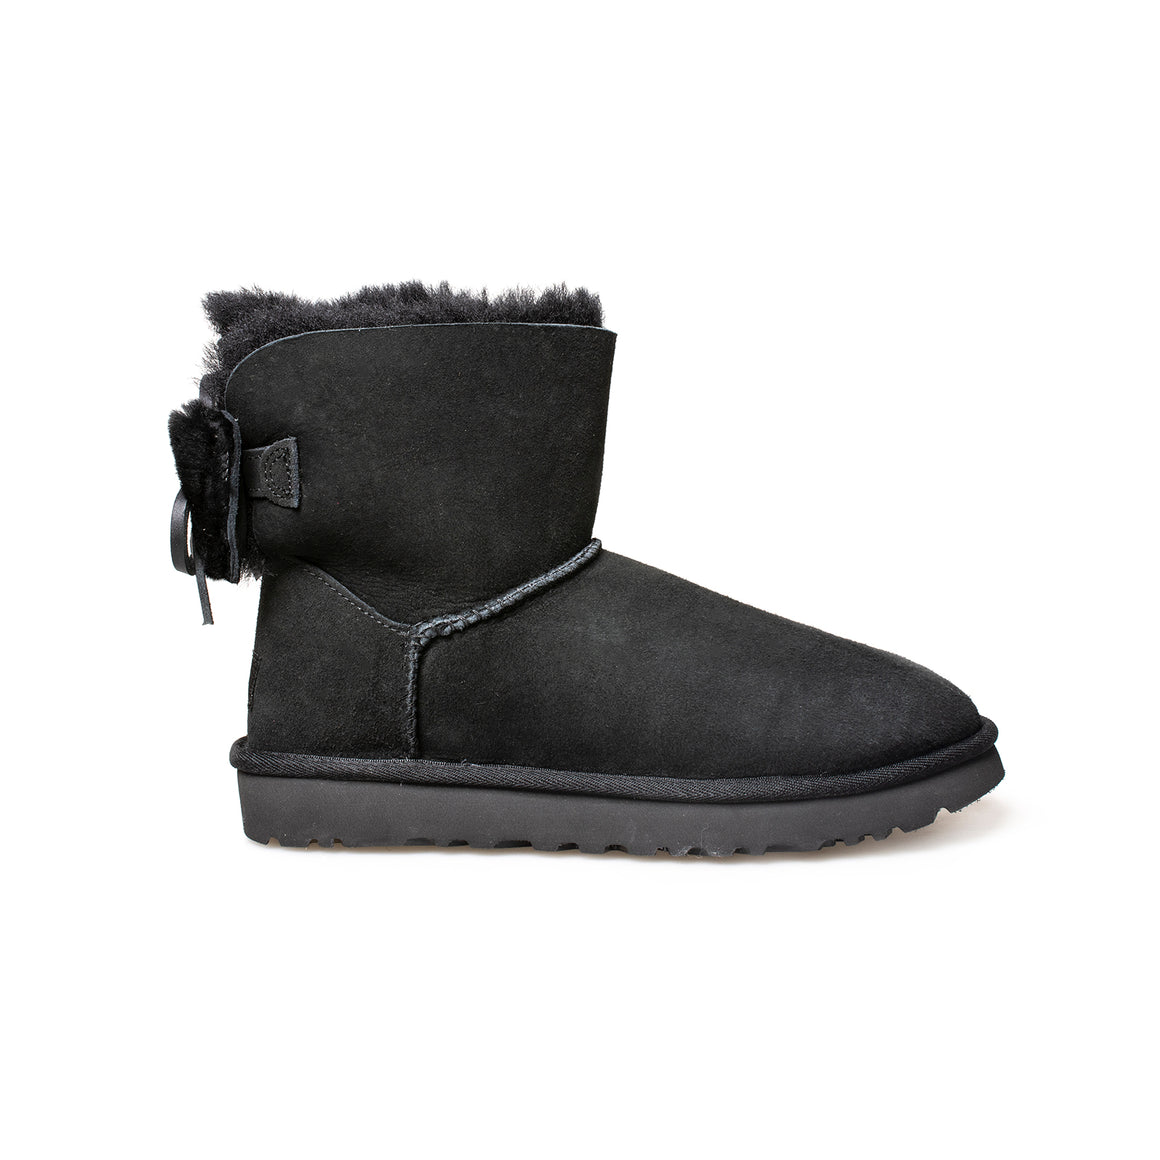 UGG Classic Double Bow Mini Black Boots - Women's